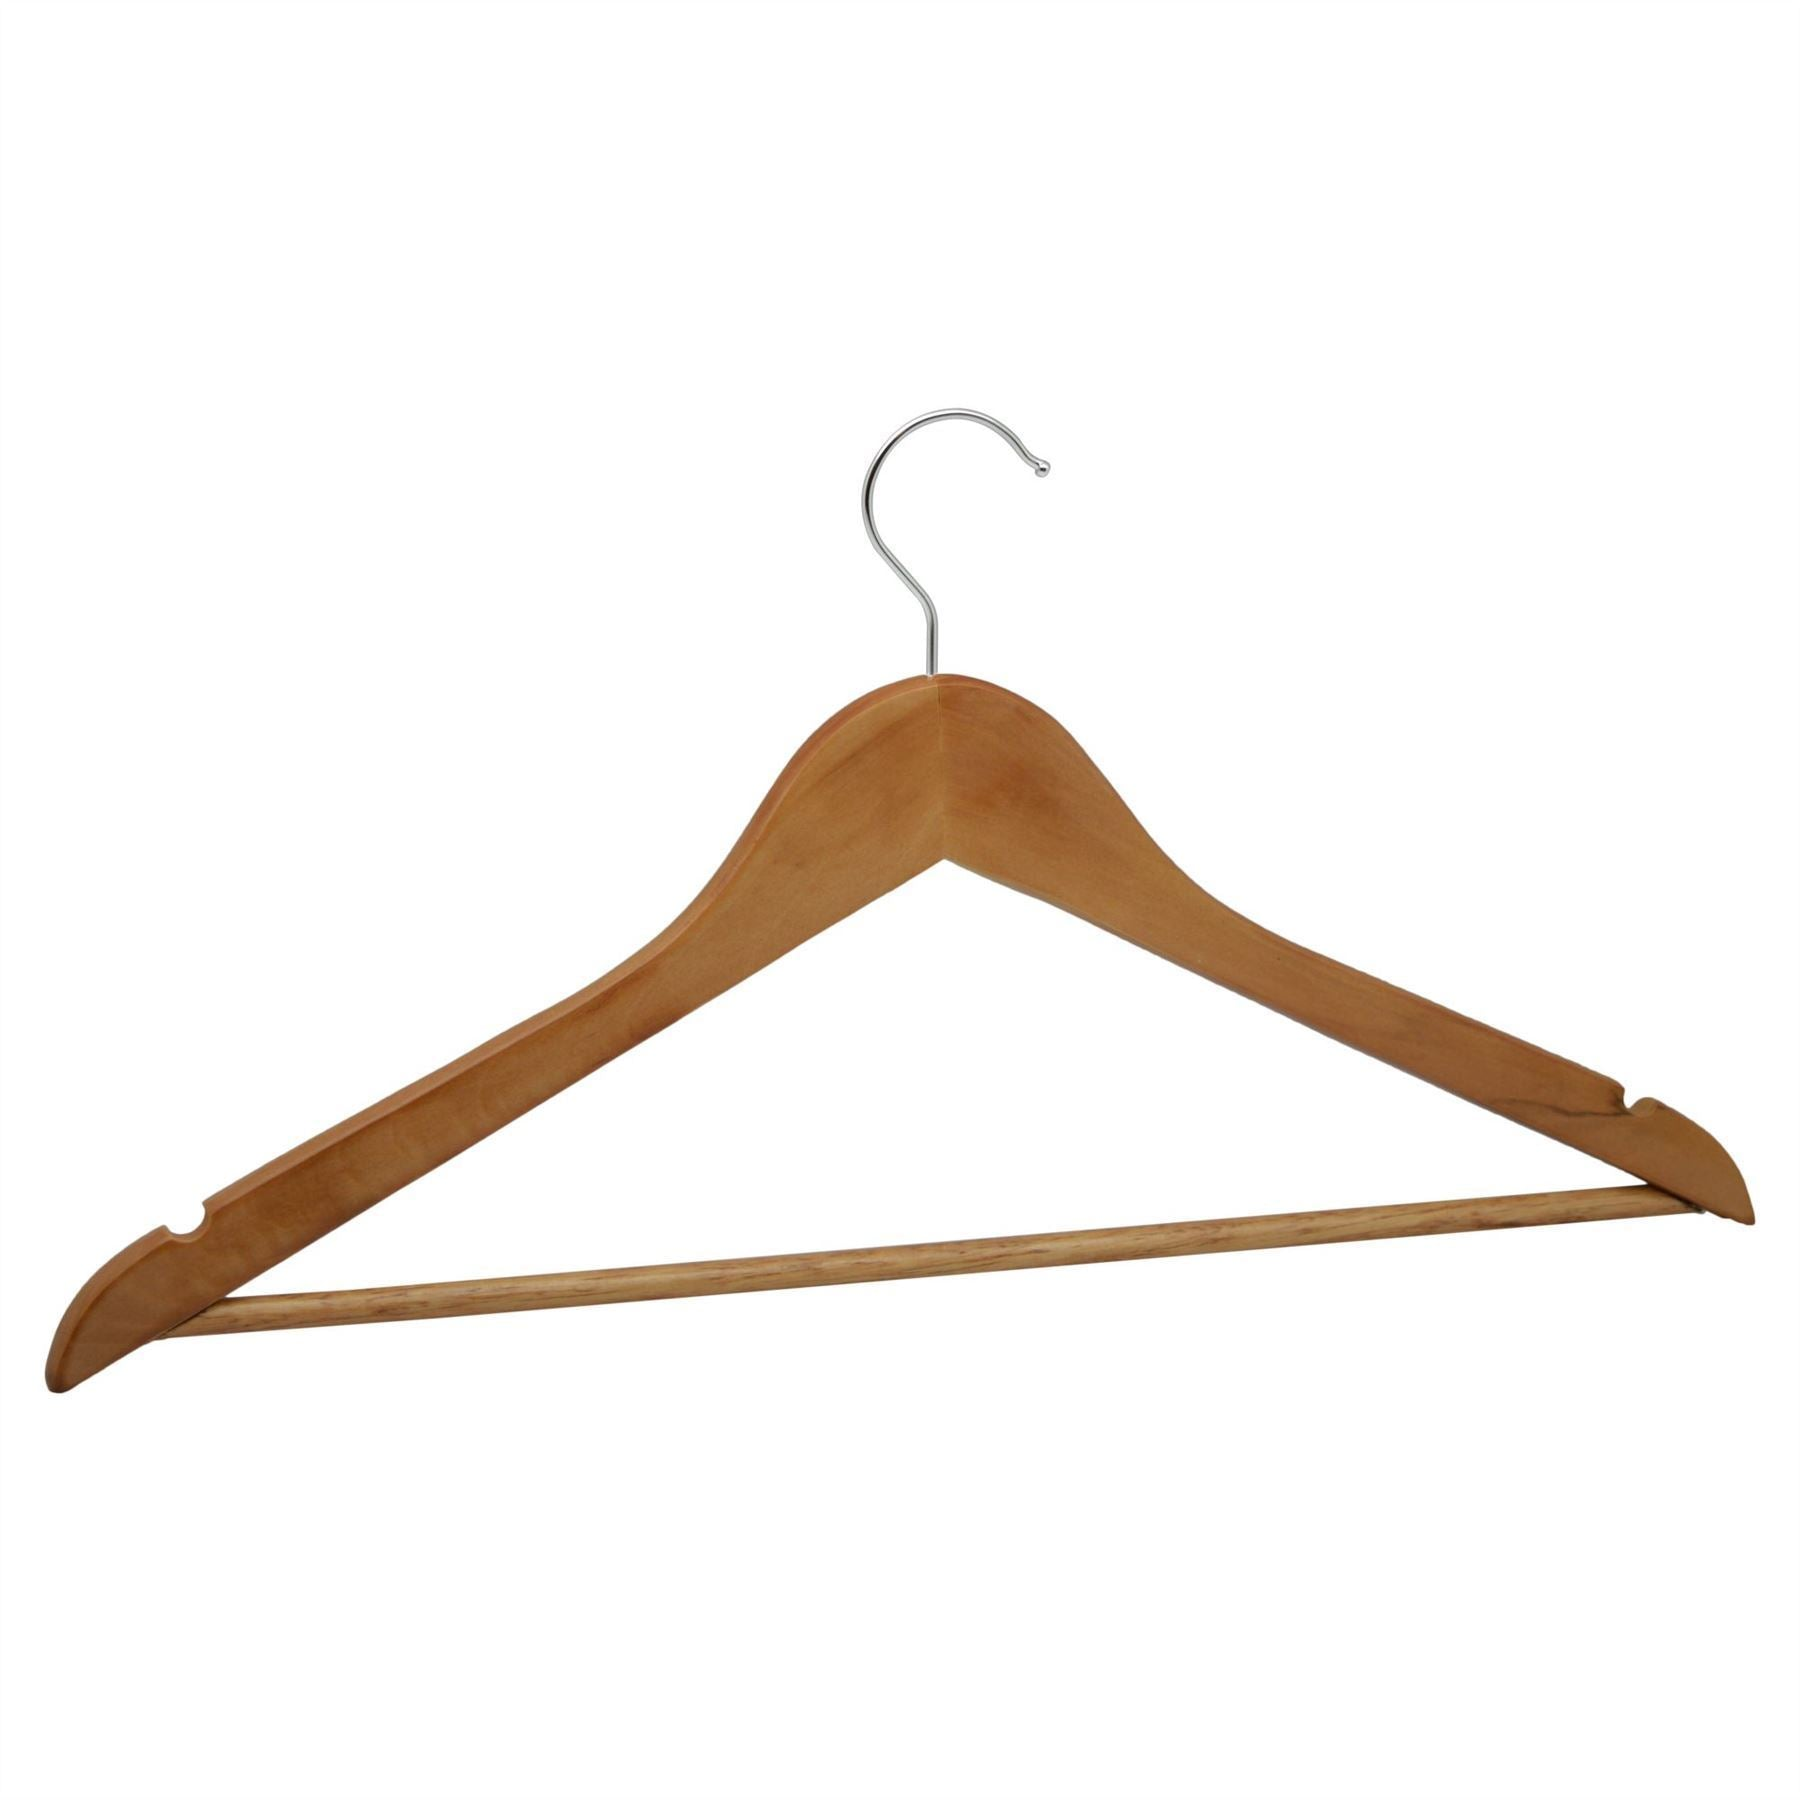 Harbour Housewares Wooden Clothes Hanger - Natural Brown